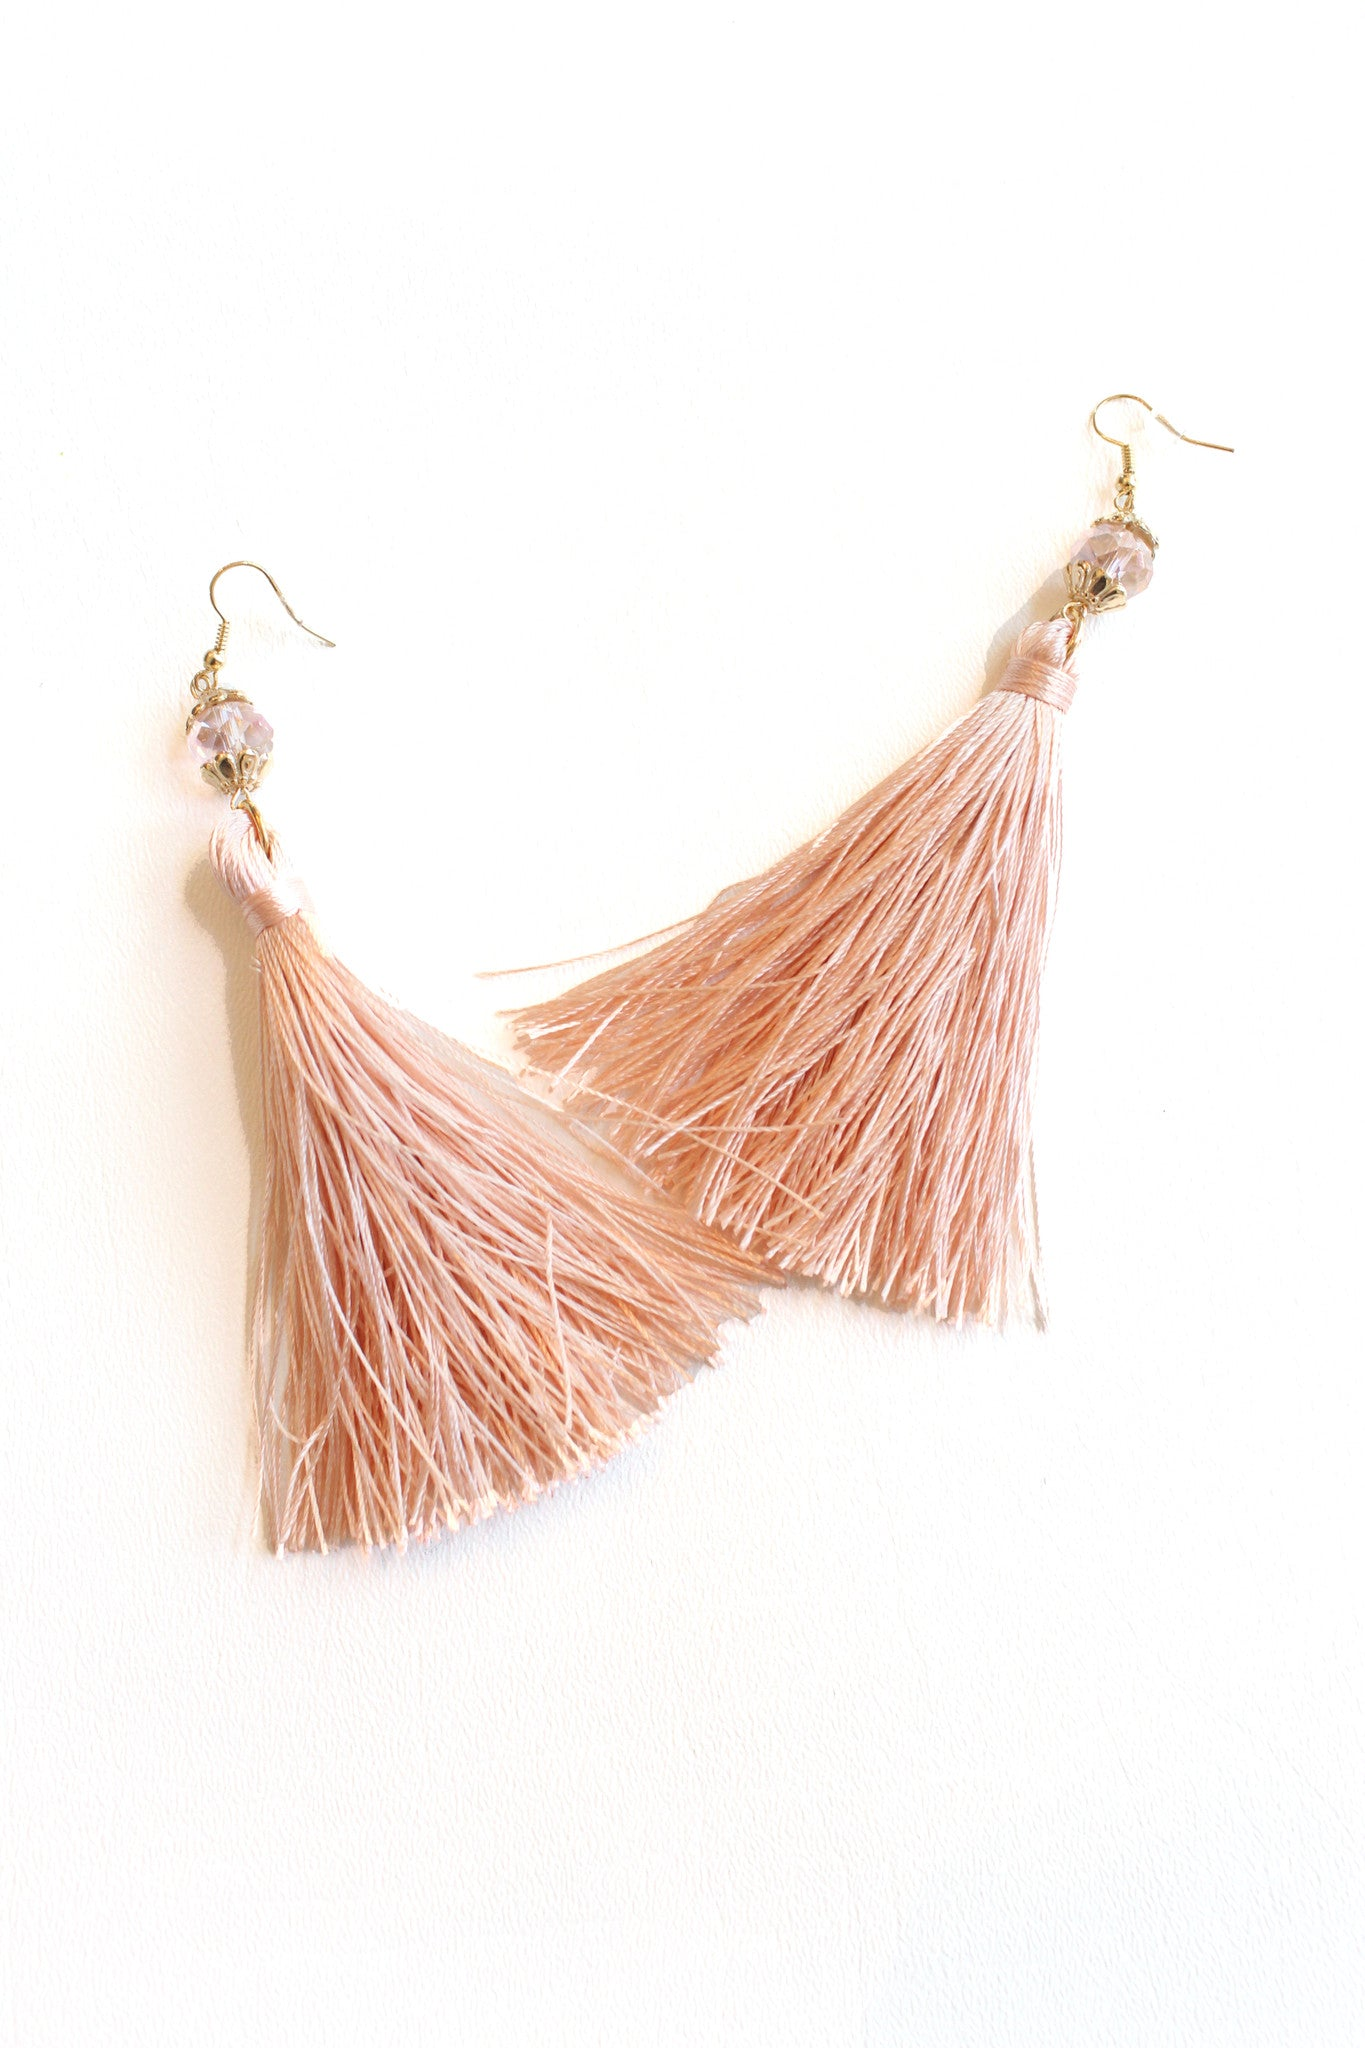 knotted astrid vanessa the mooney earrings ivory tassel products tassle